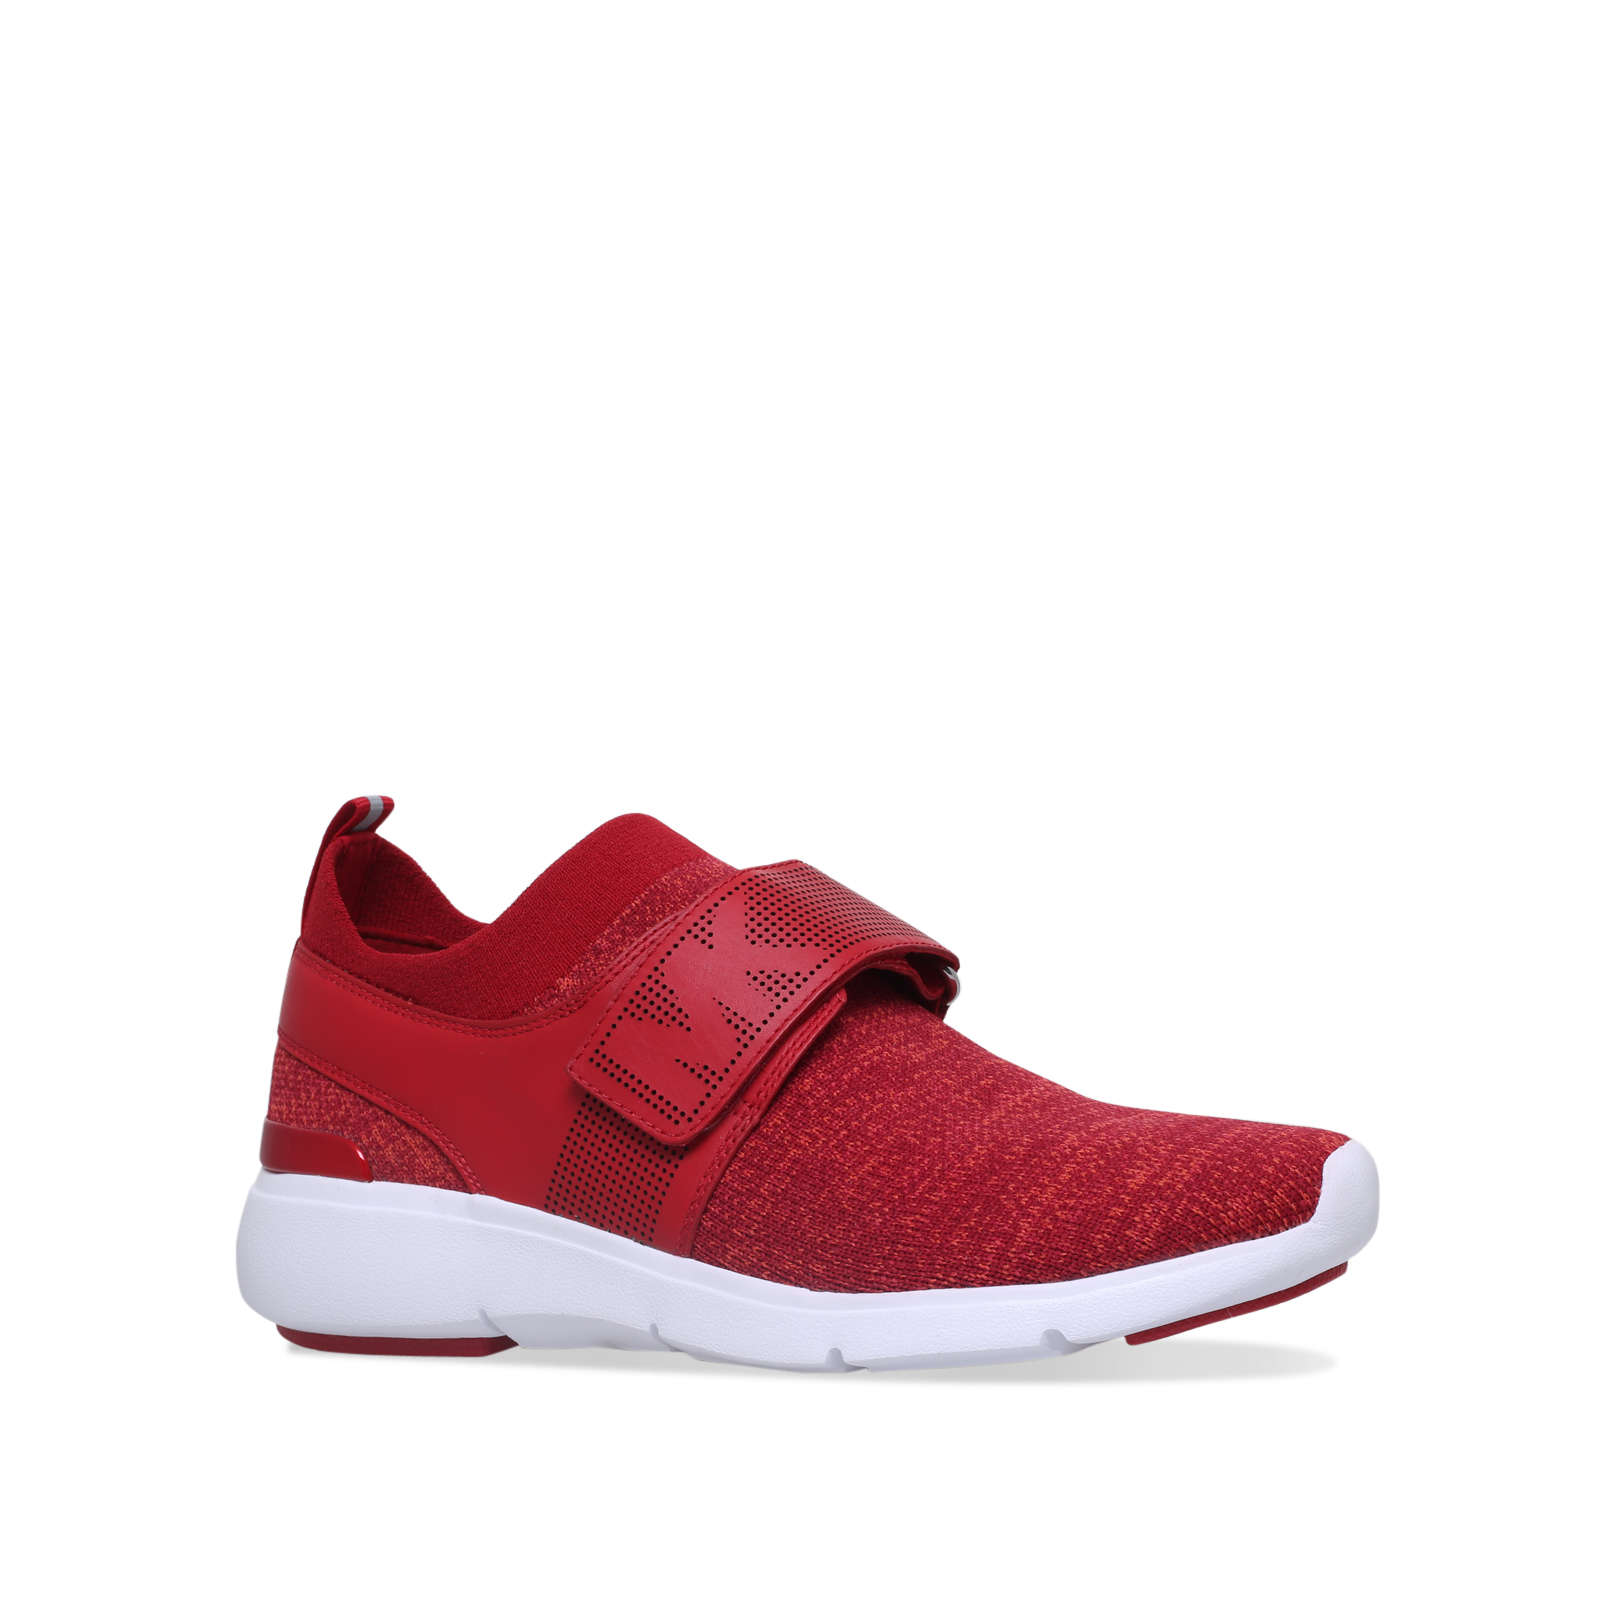 Womens Michael Kors Shoes Trainers Shoeaholics Flash  Olivia Sneakers Xander Trainer From